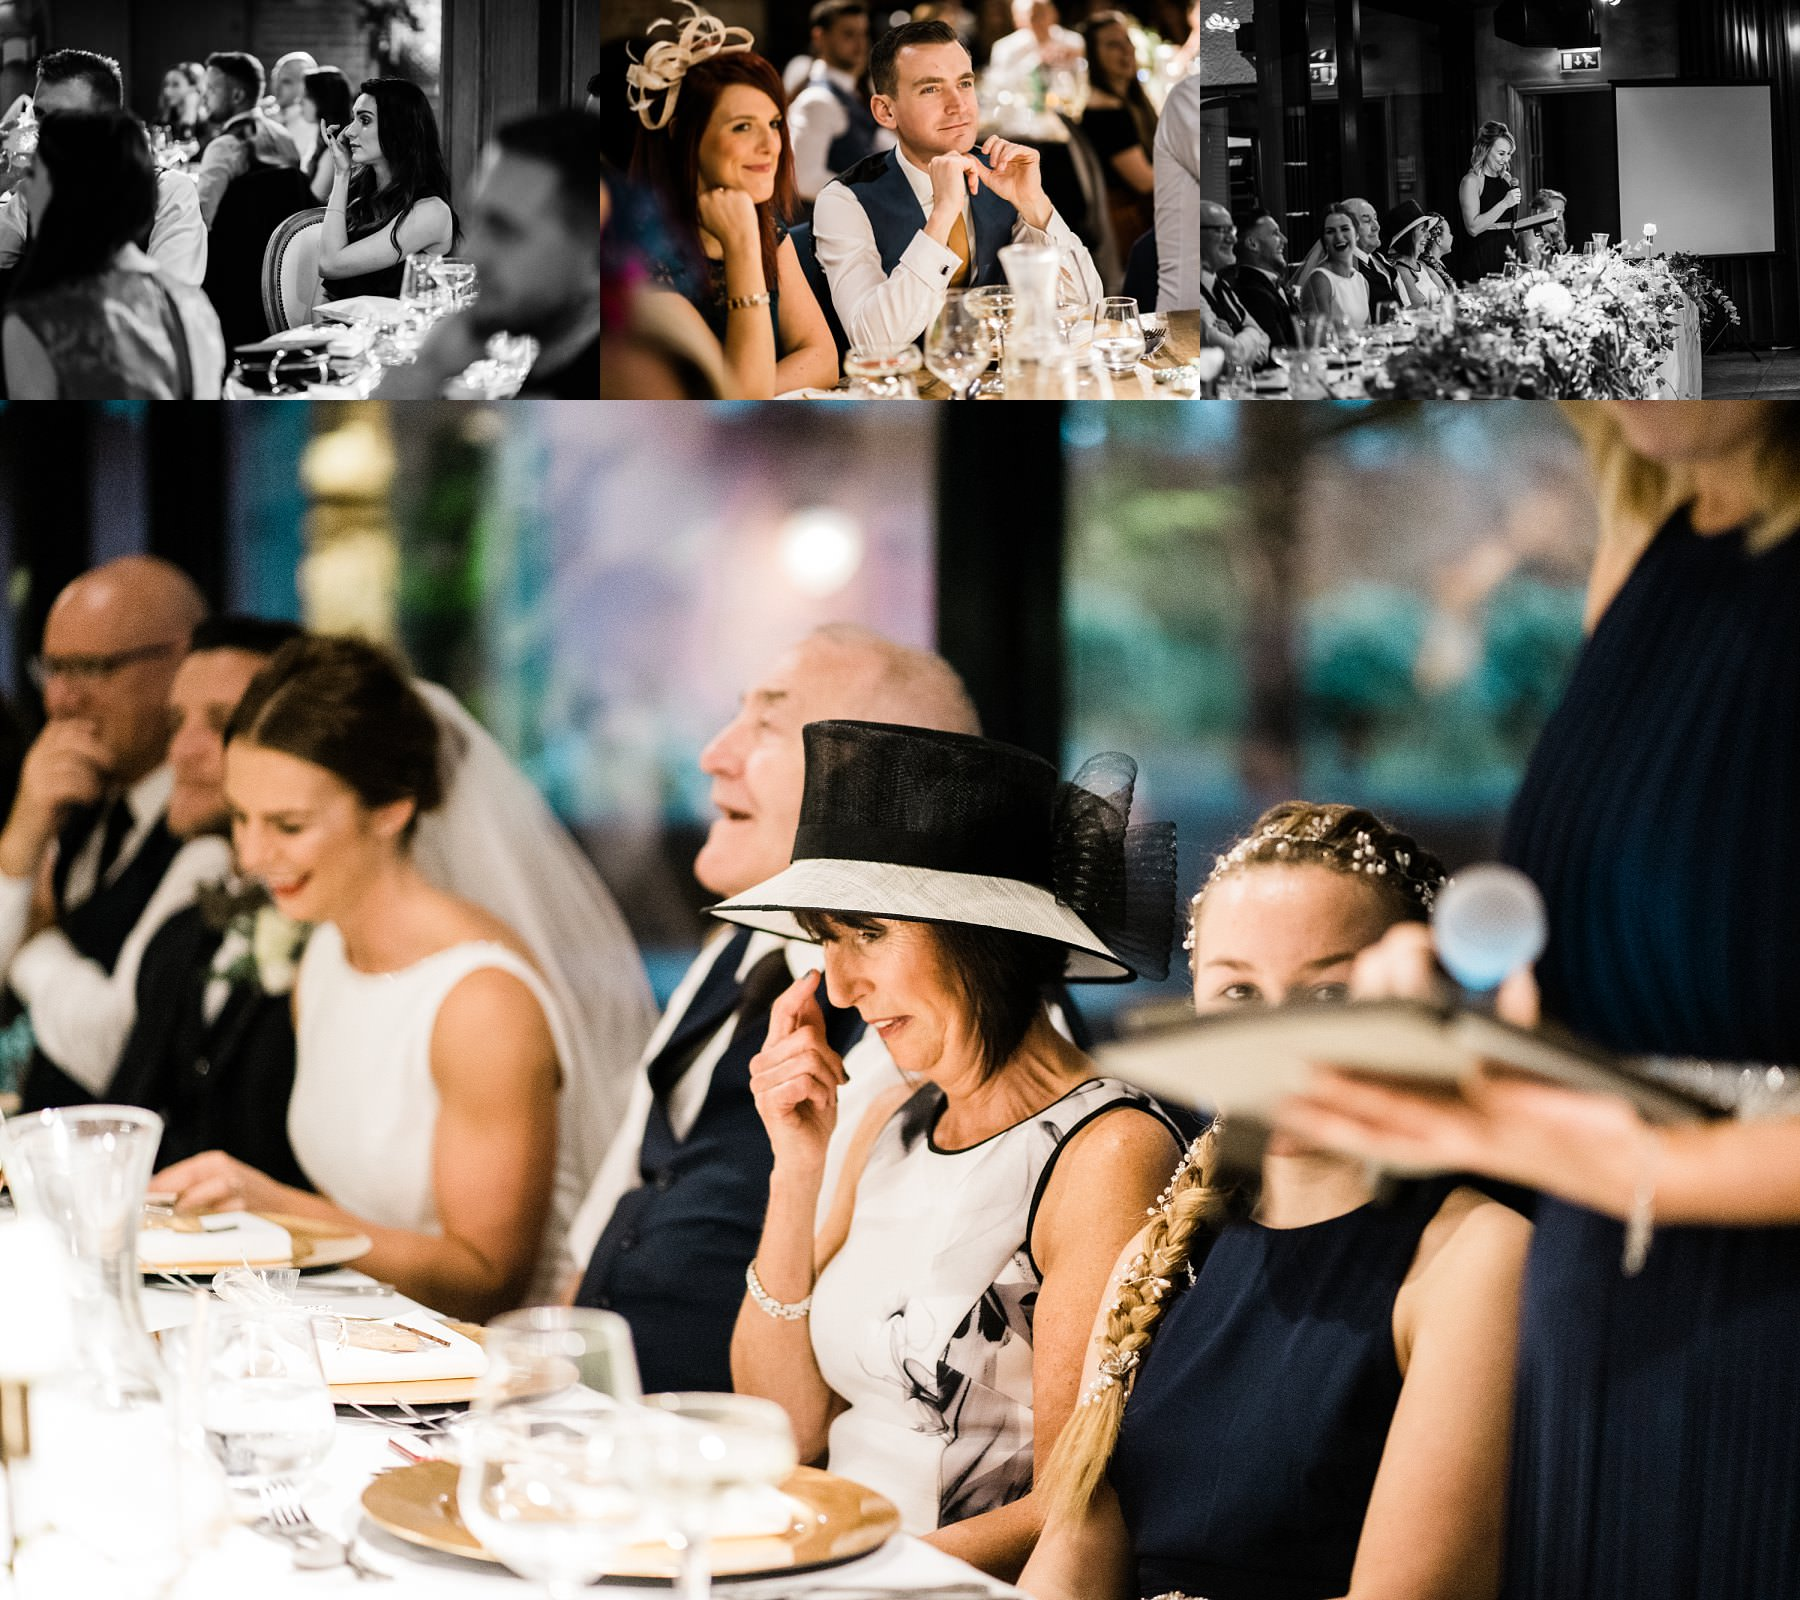 mother of the bride wiping tear Le petite Chateau wedding - Newcastle Wedding Photographer